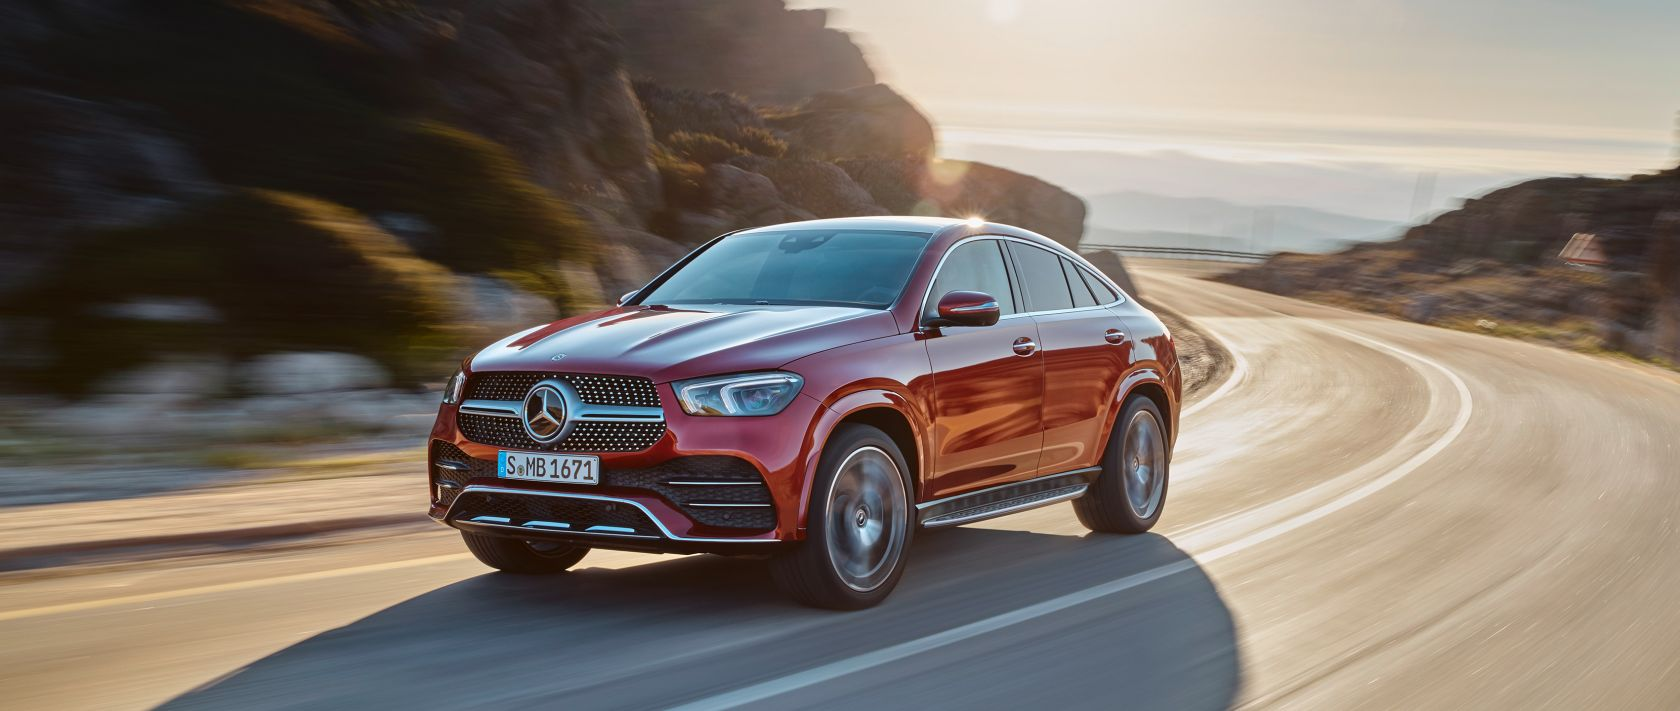 The new 2020 Mercedes-Benz GLE Coupé (C 167) in designo hyacinth red metallic at sunset.